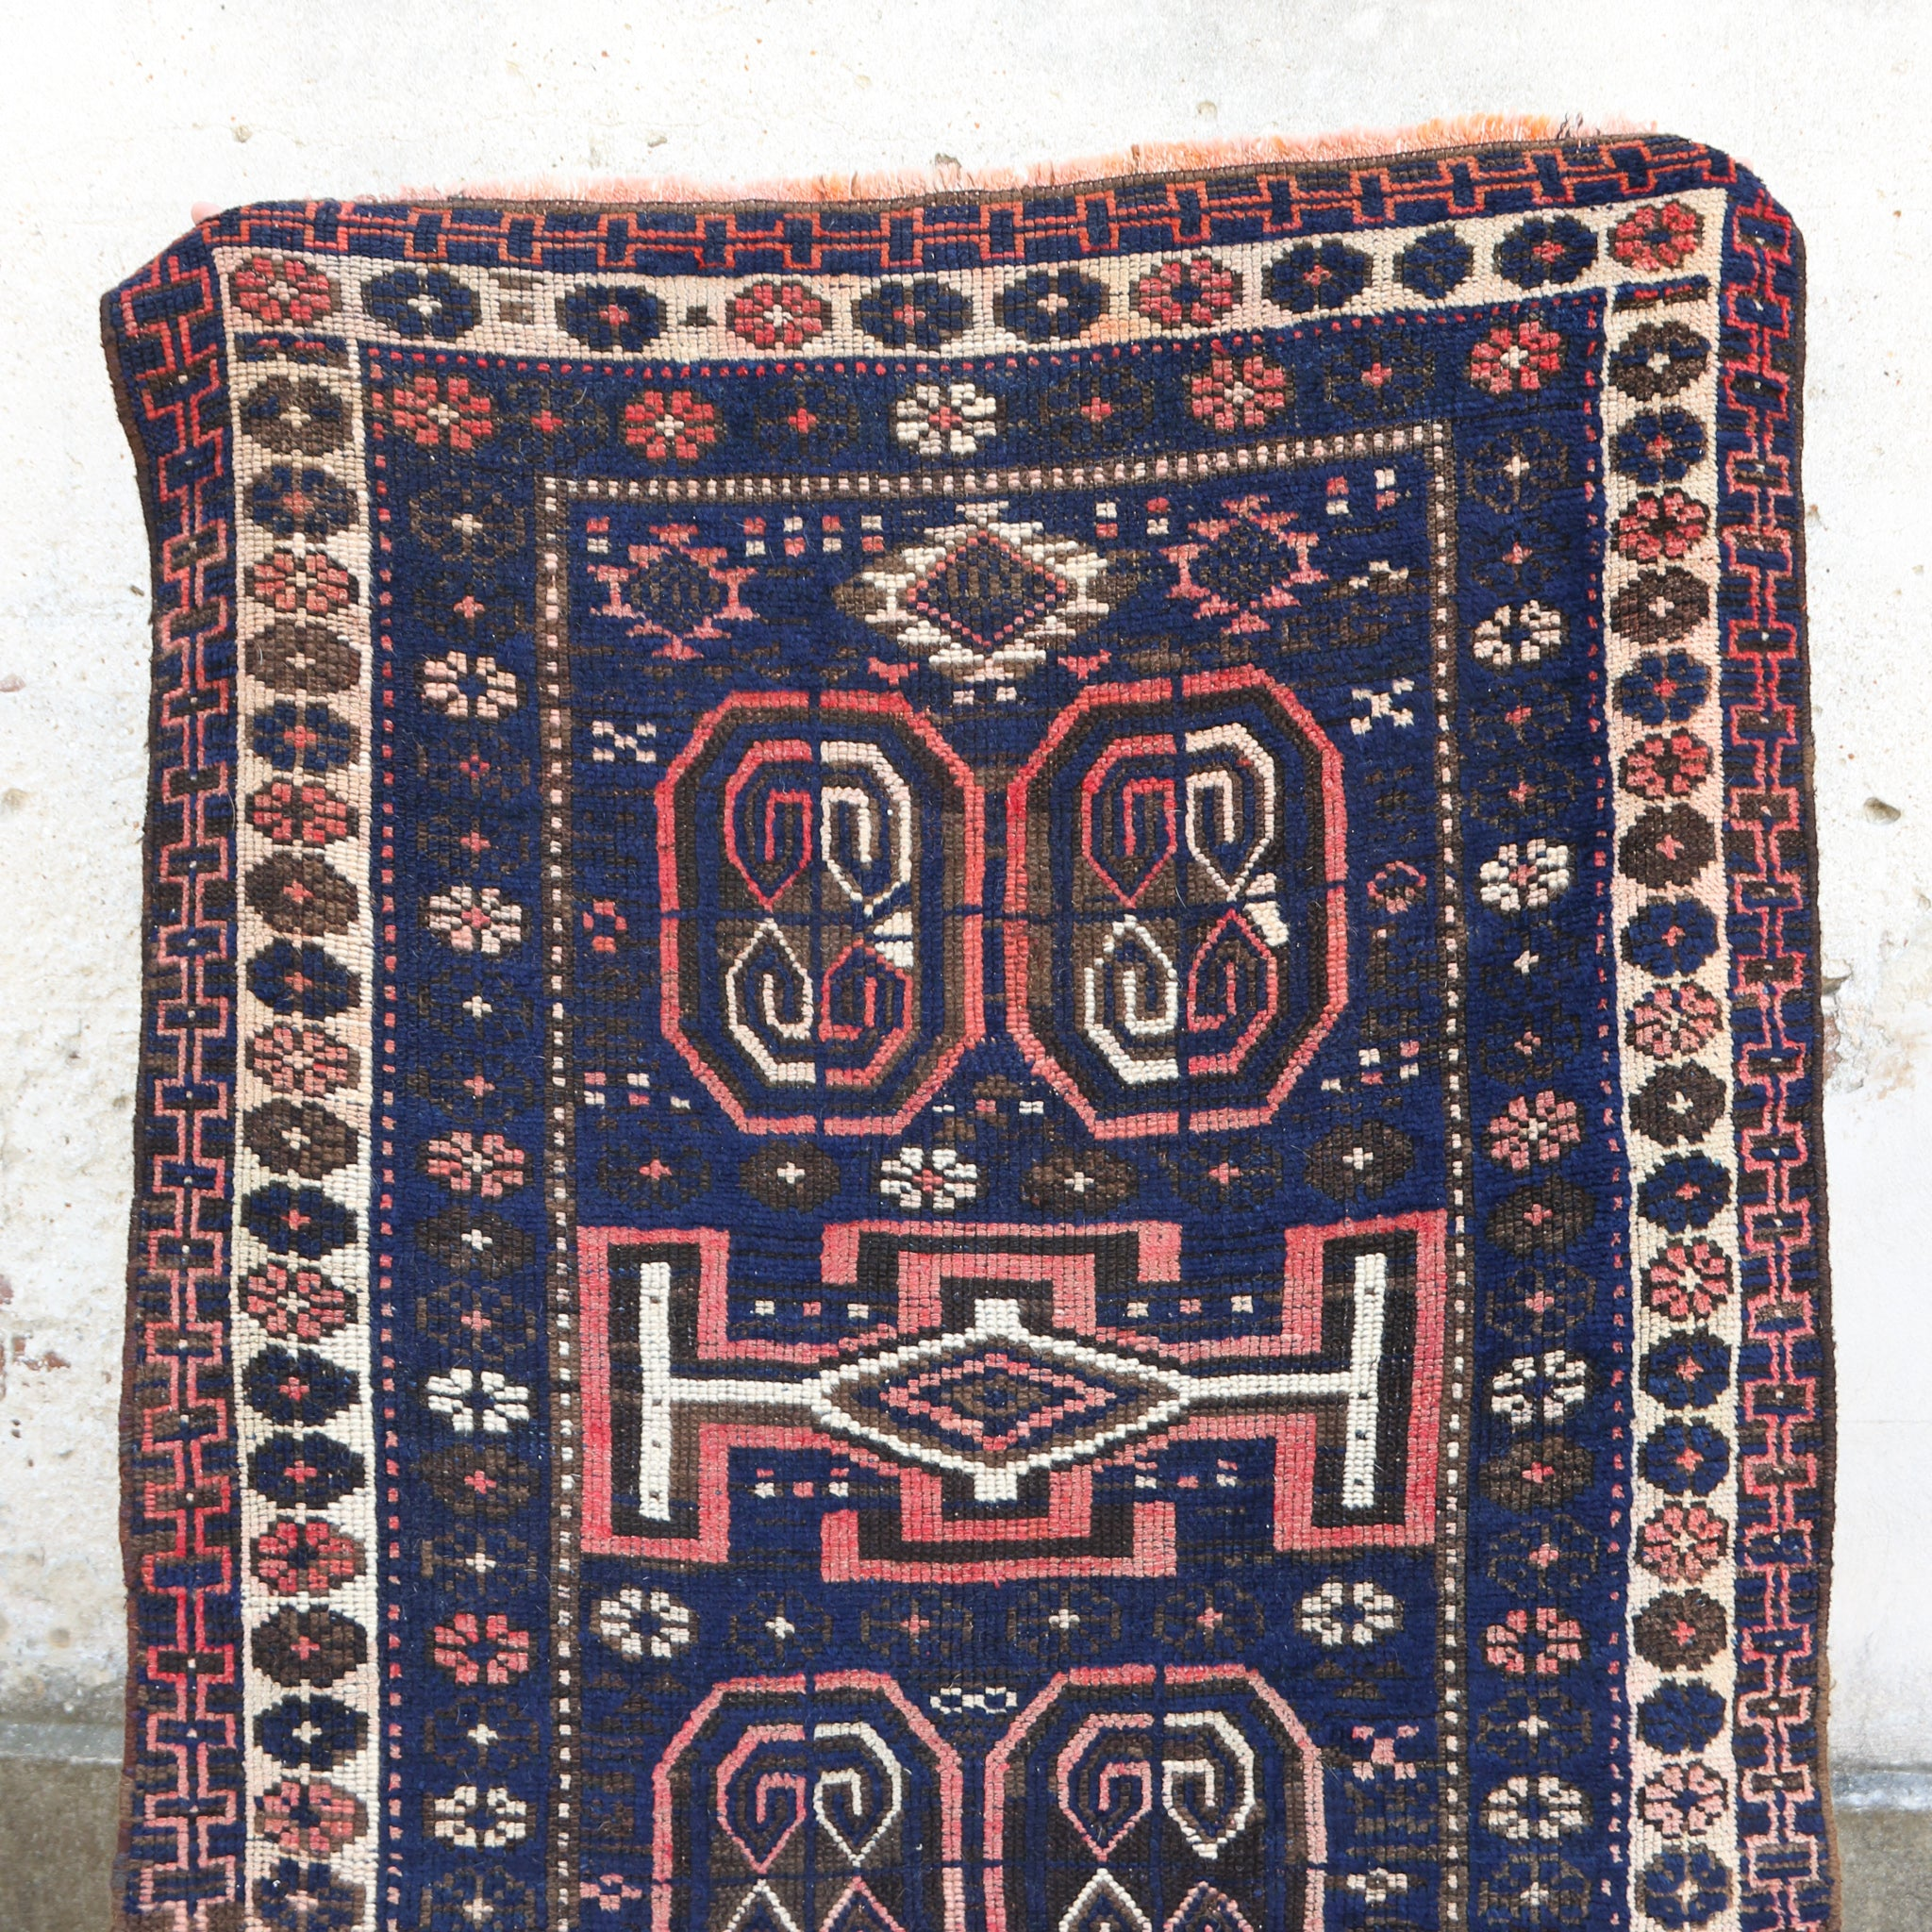 ON HOLD NOT AVAILABLE 462 Zuhal 3'6x8 Handwoven Vintage Rug